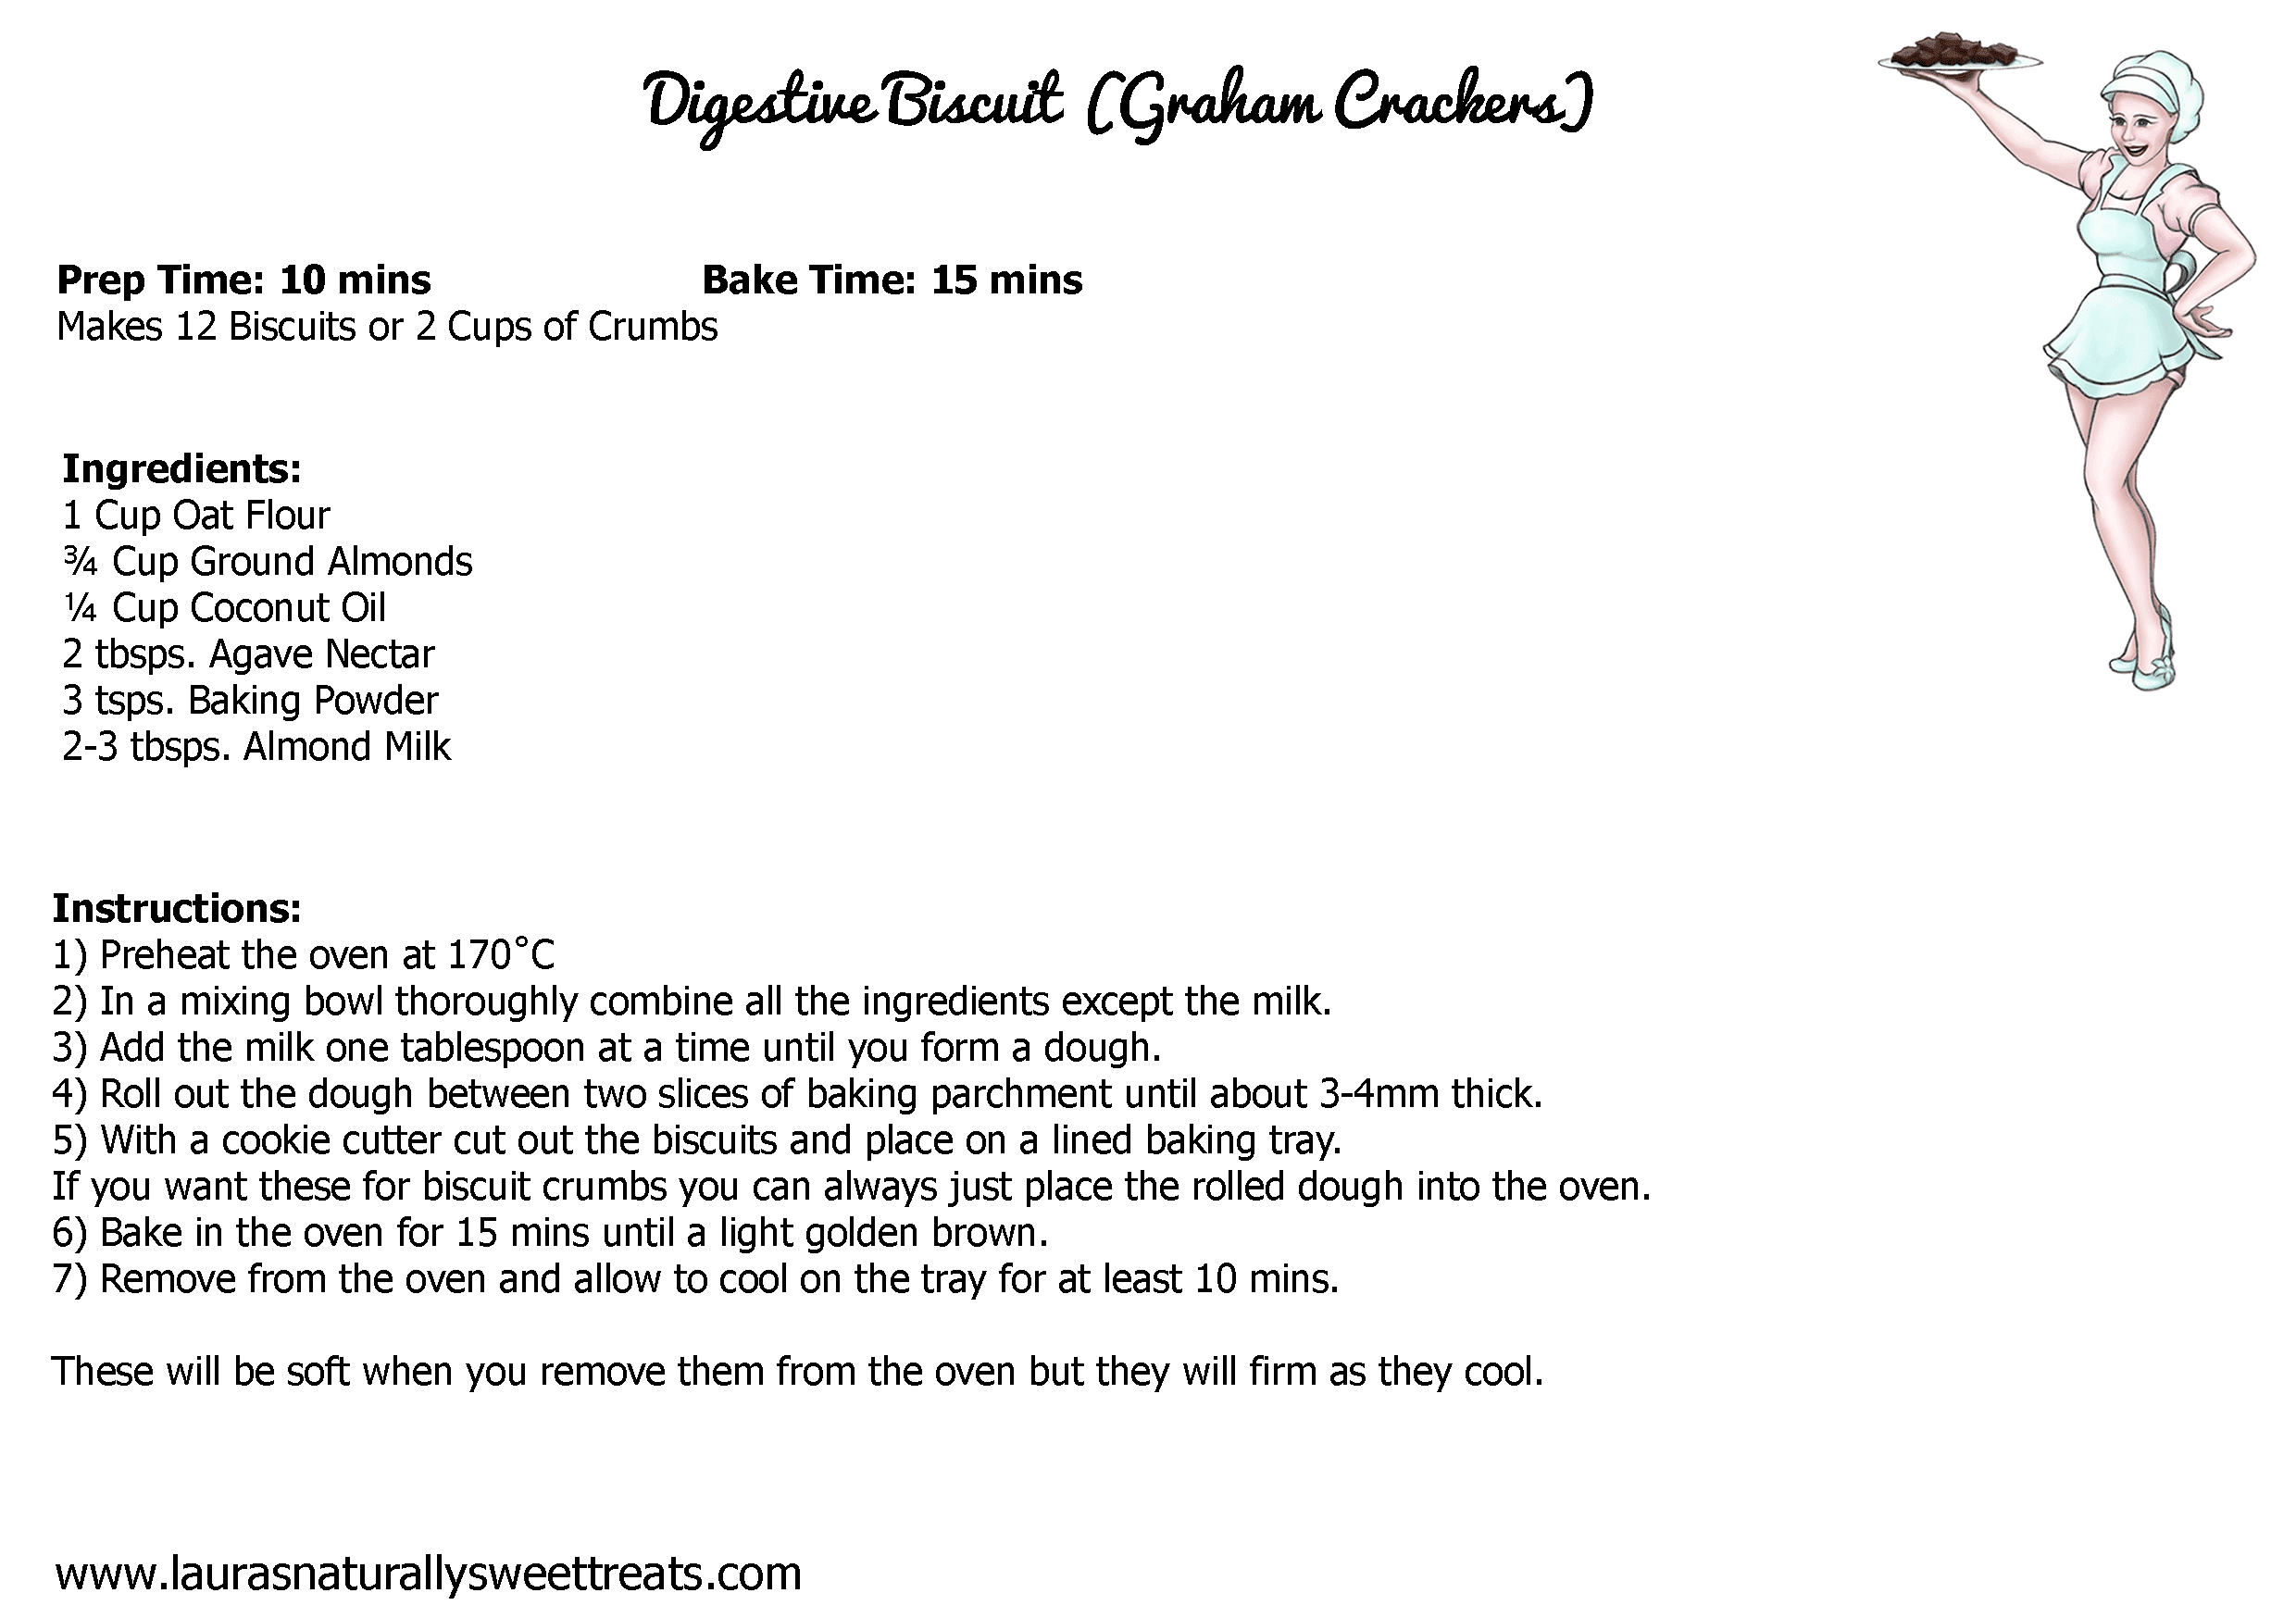 digestive-biscuit-recipe-card